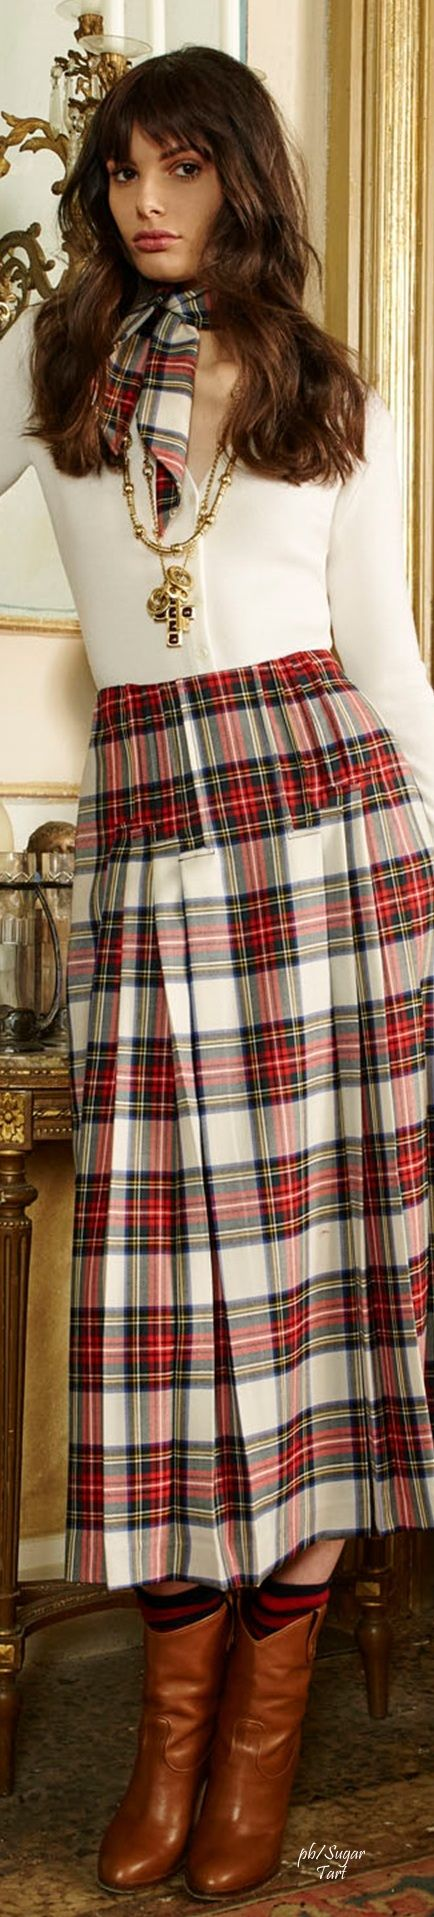 The 25 Best Tartan Fashion Ideas On Pinterest Sixties